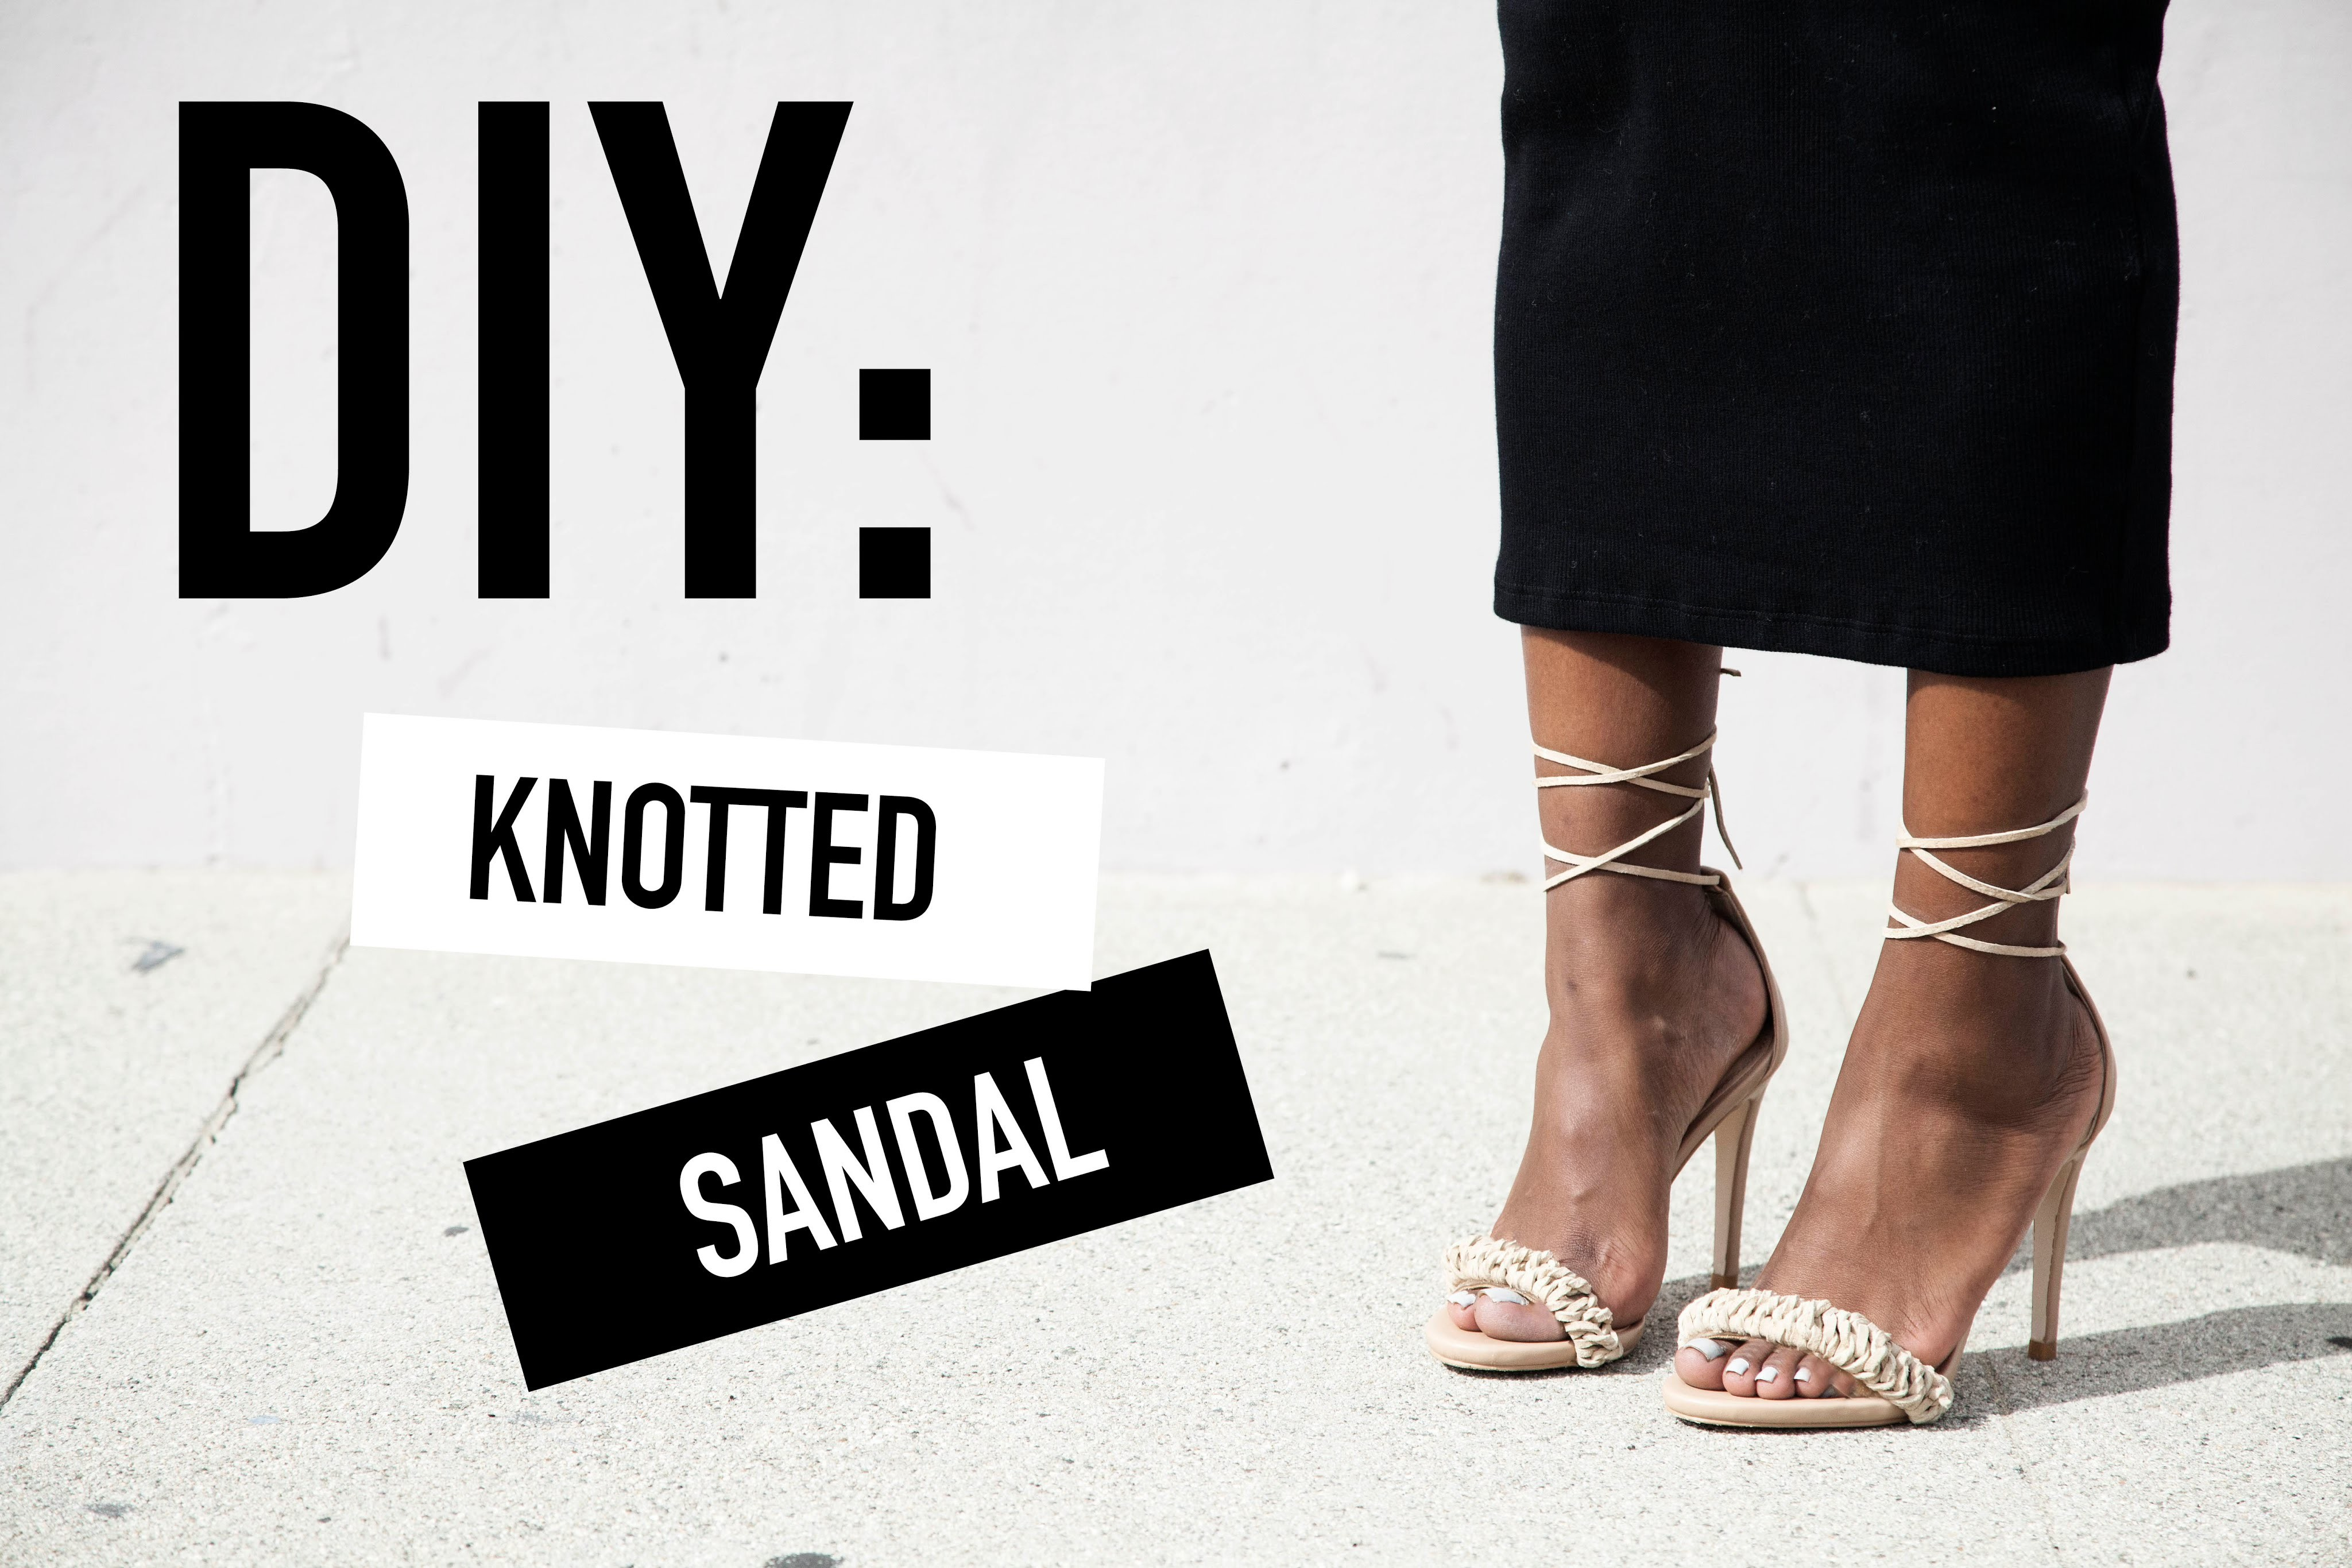 DIY: Knotted Sandal